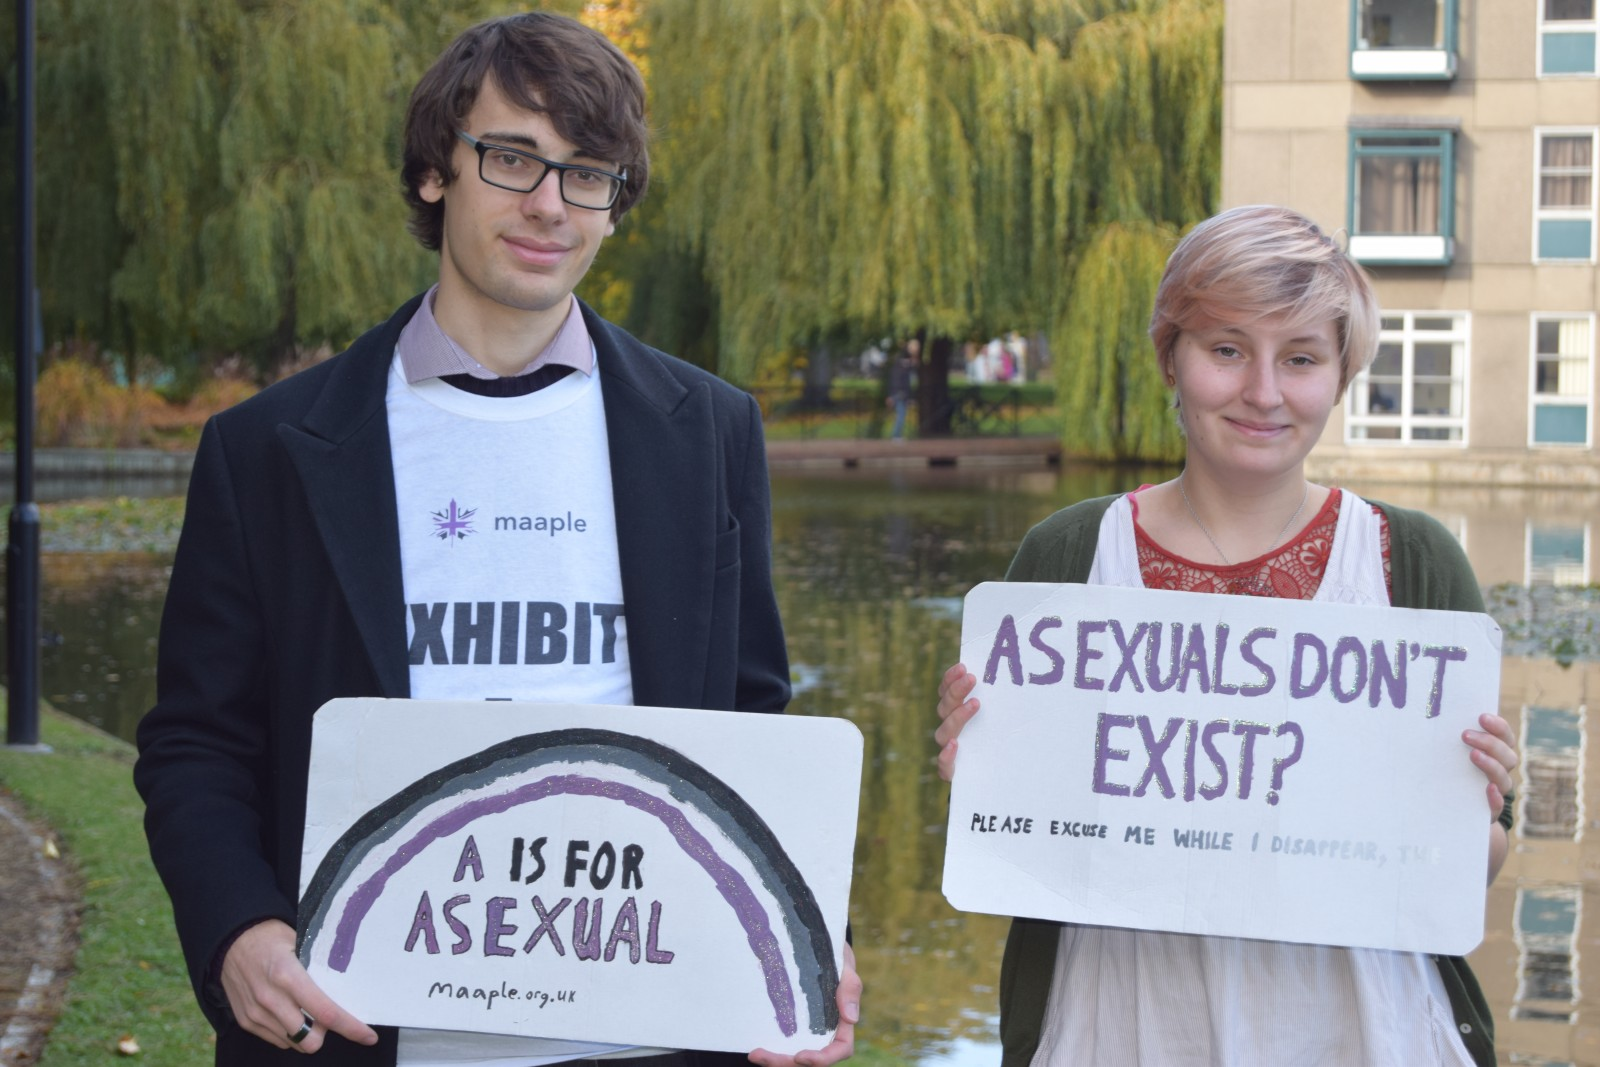 Asexual people